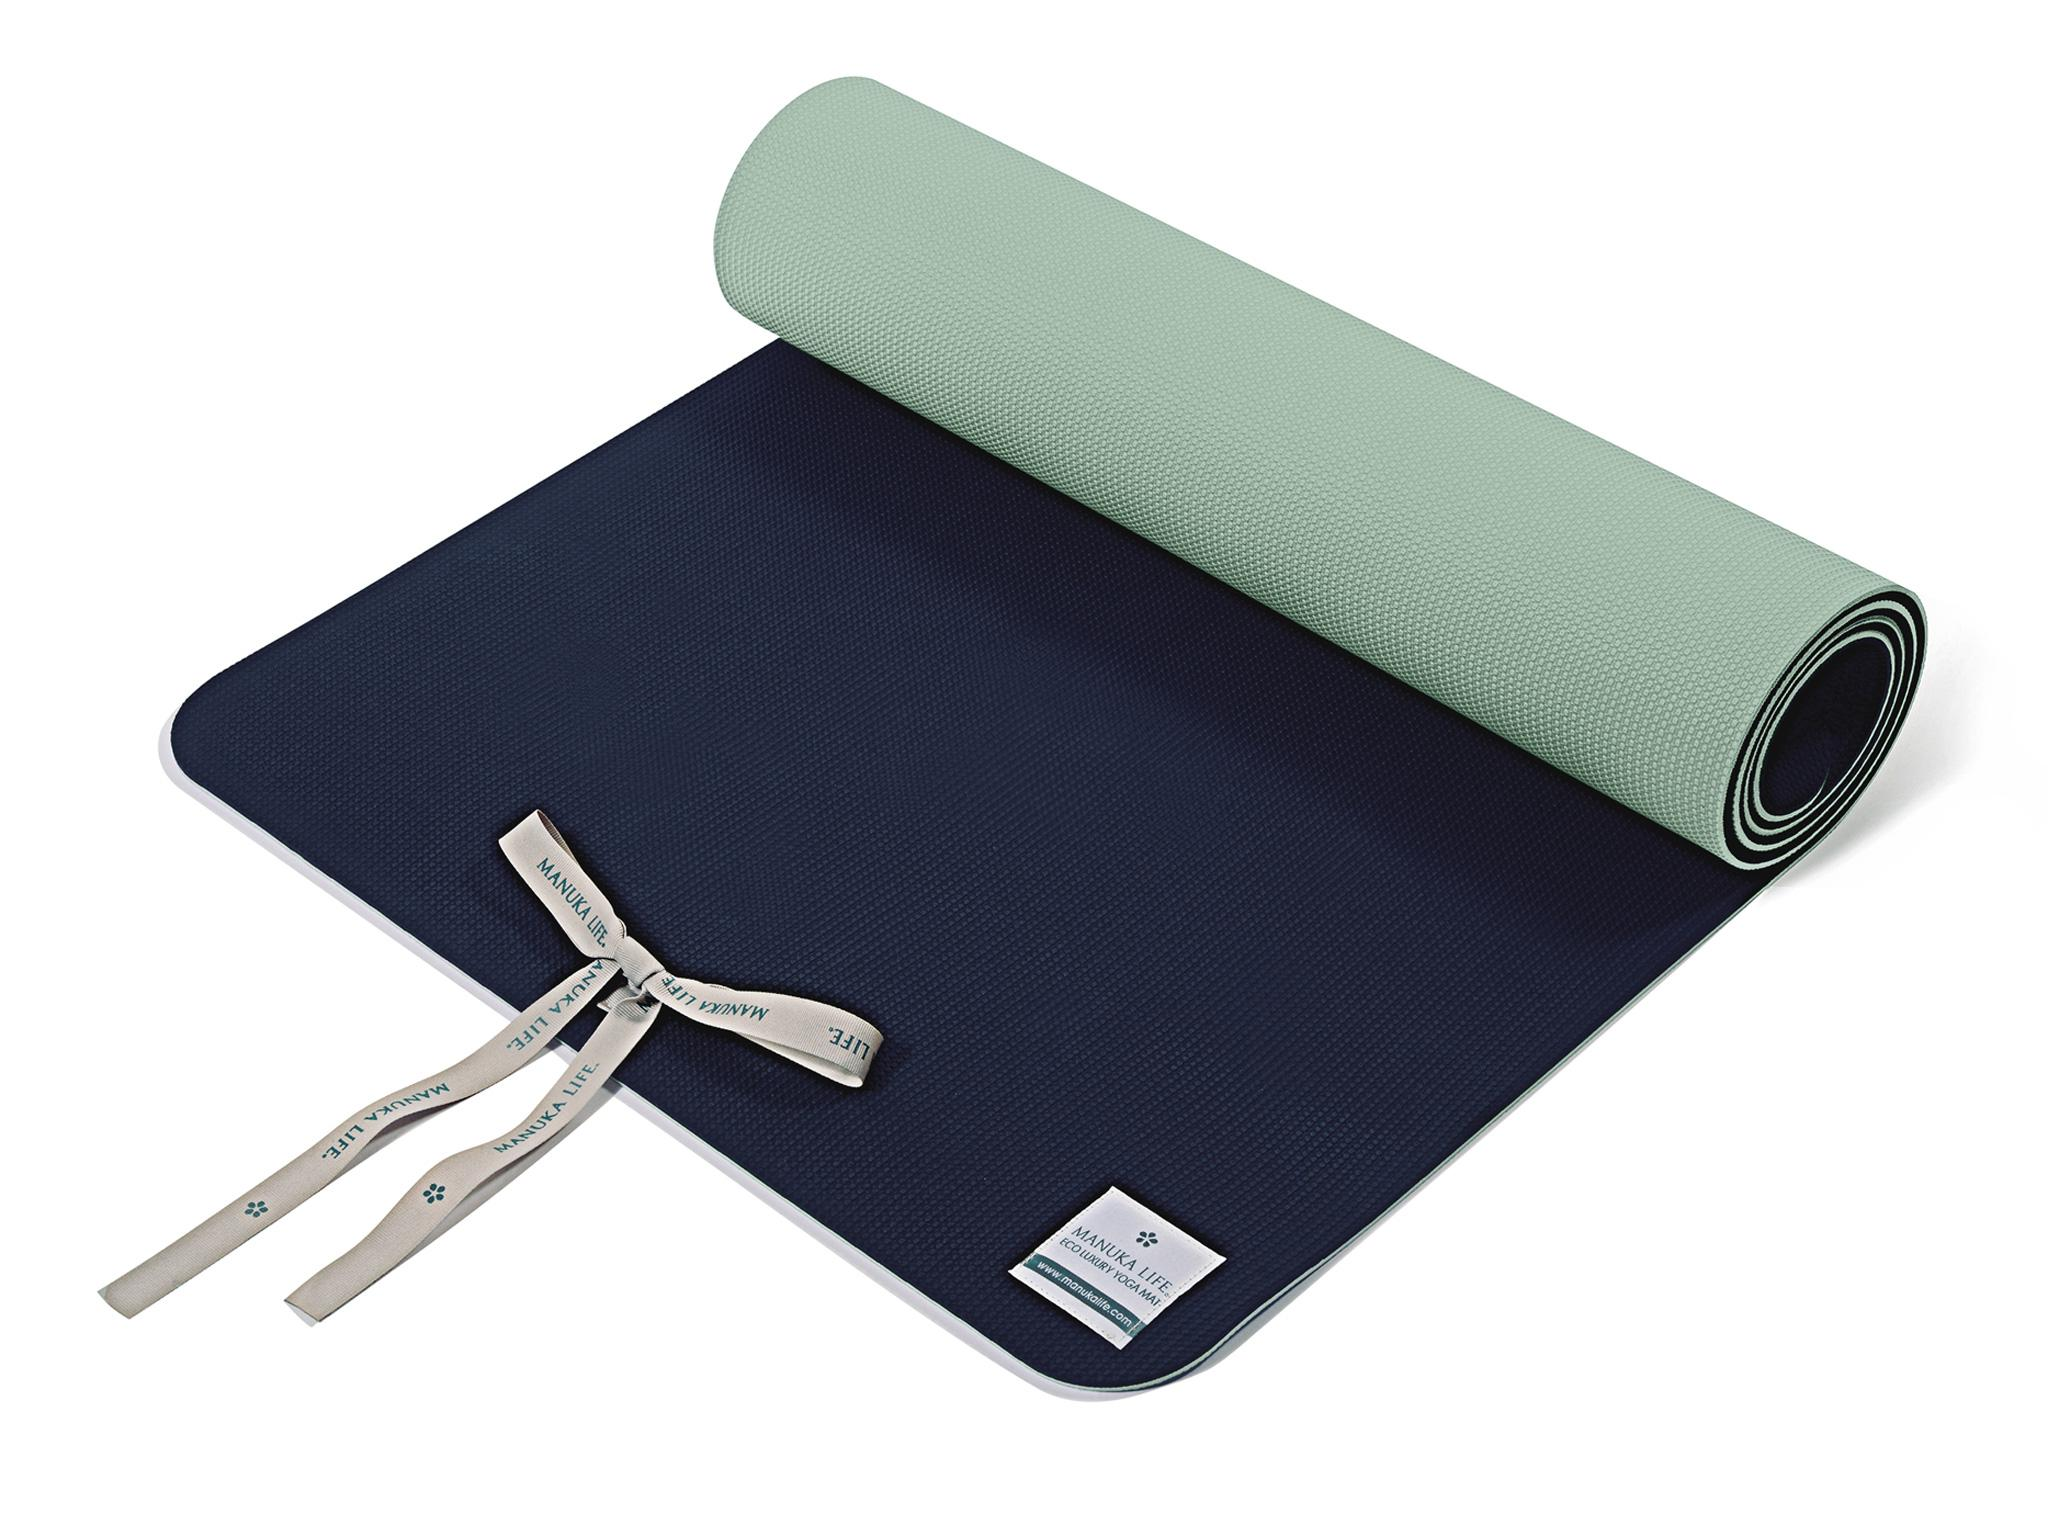 best mat mats thick for tomare the exercise matrices choosing sticky yoga a